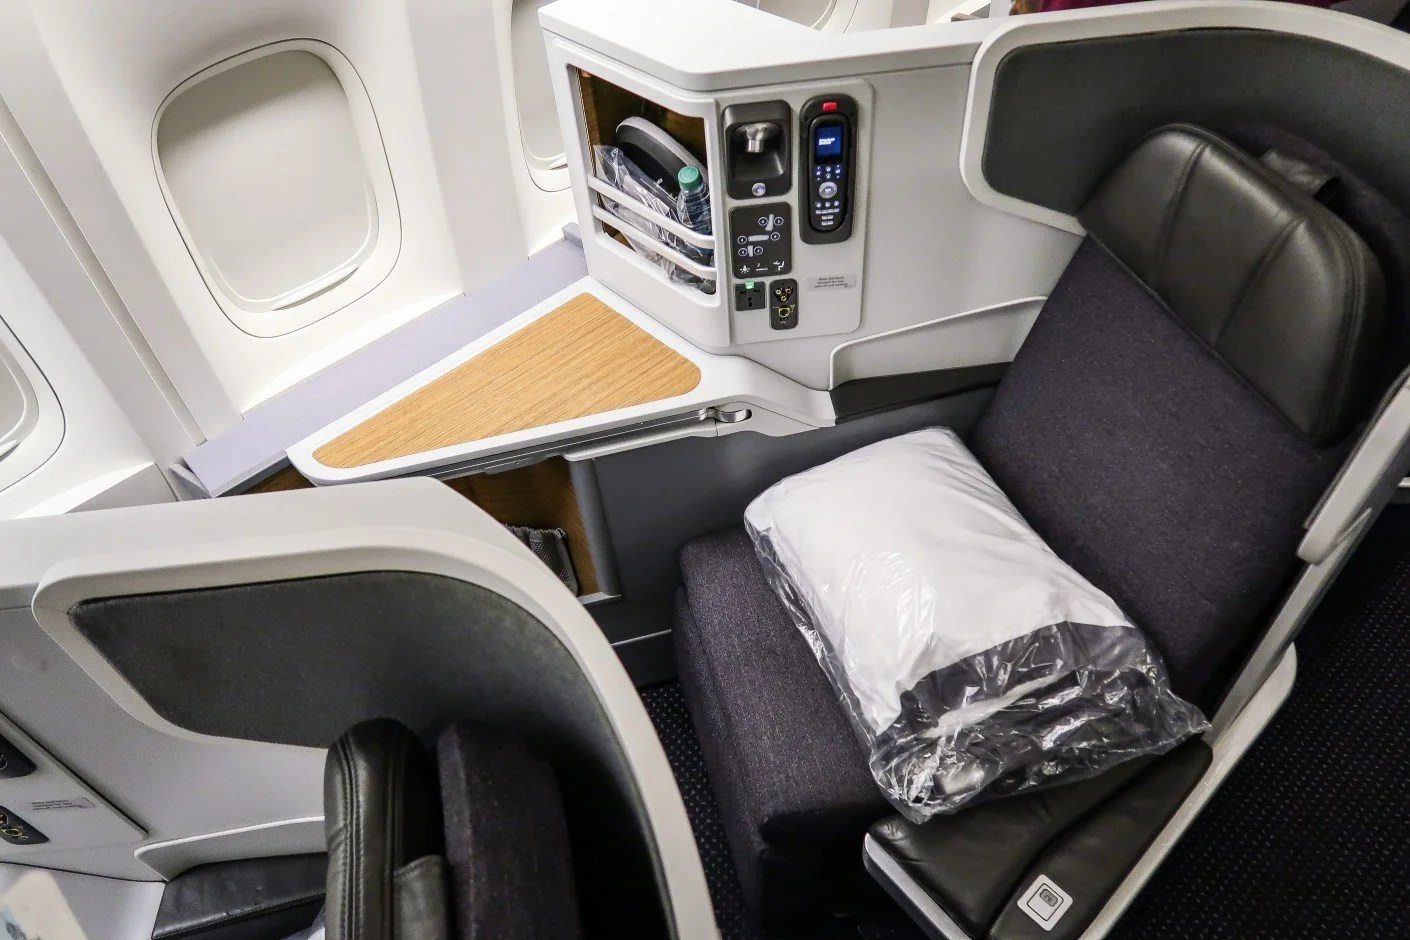 Consistently Inconsistent: American Airlines in Business Class on the 777-300ER From New York to London